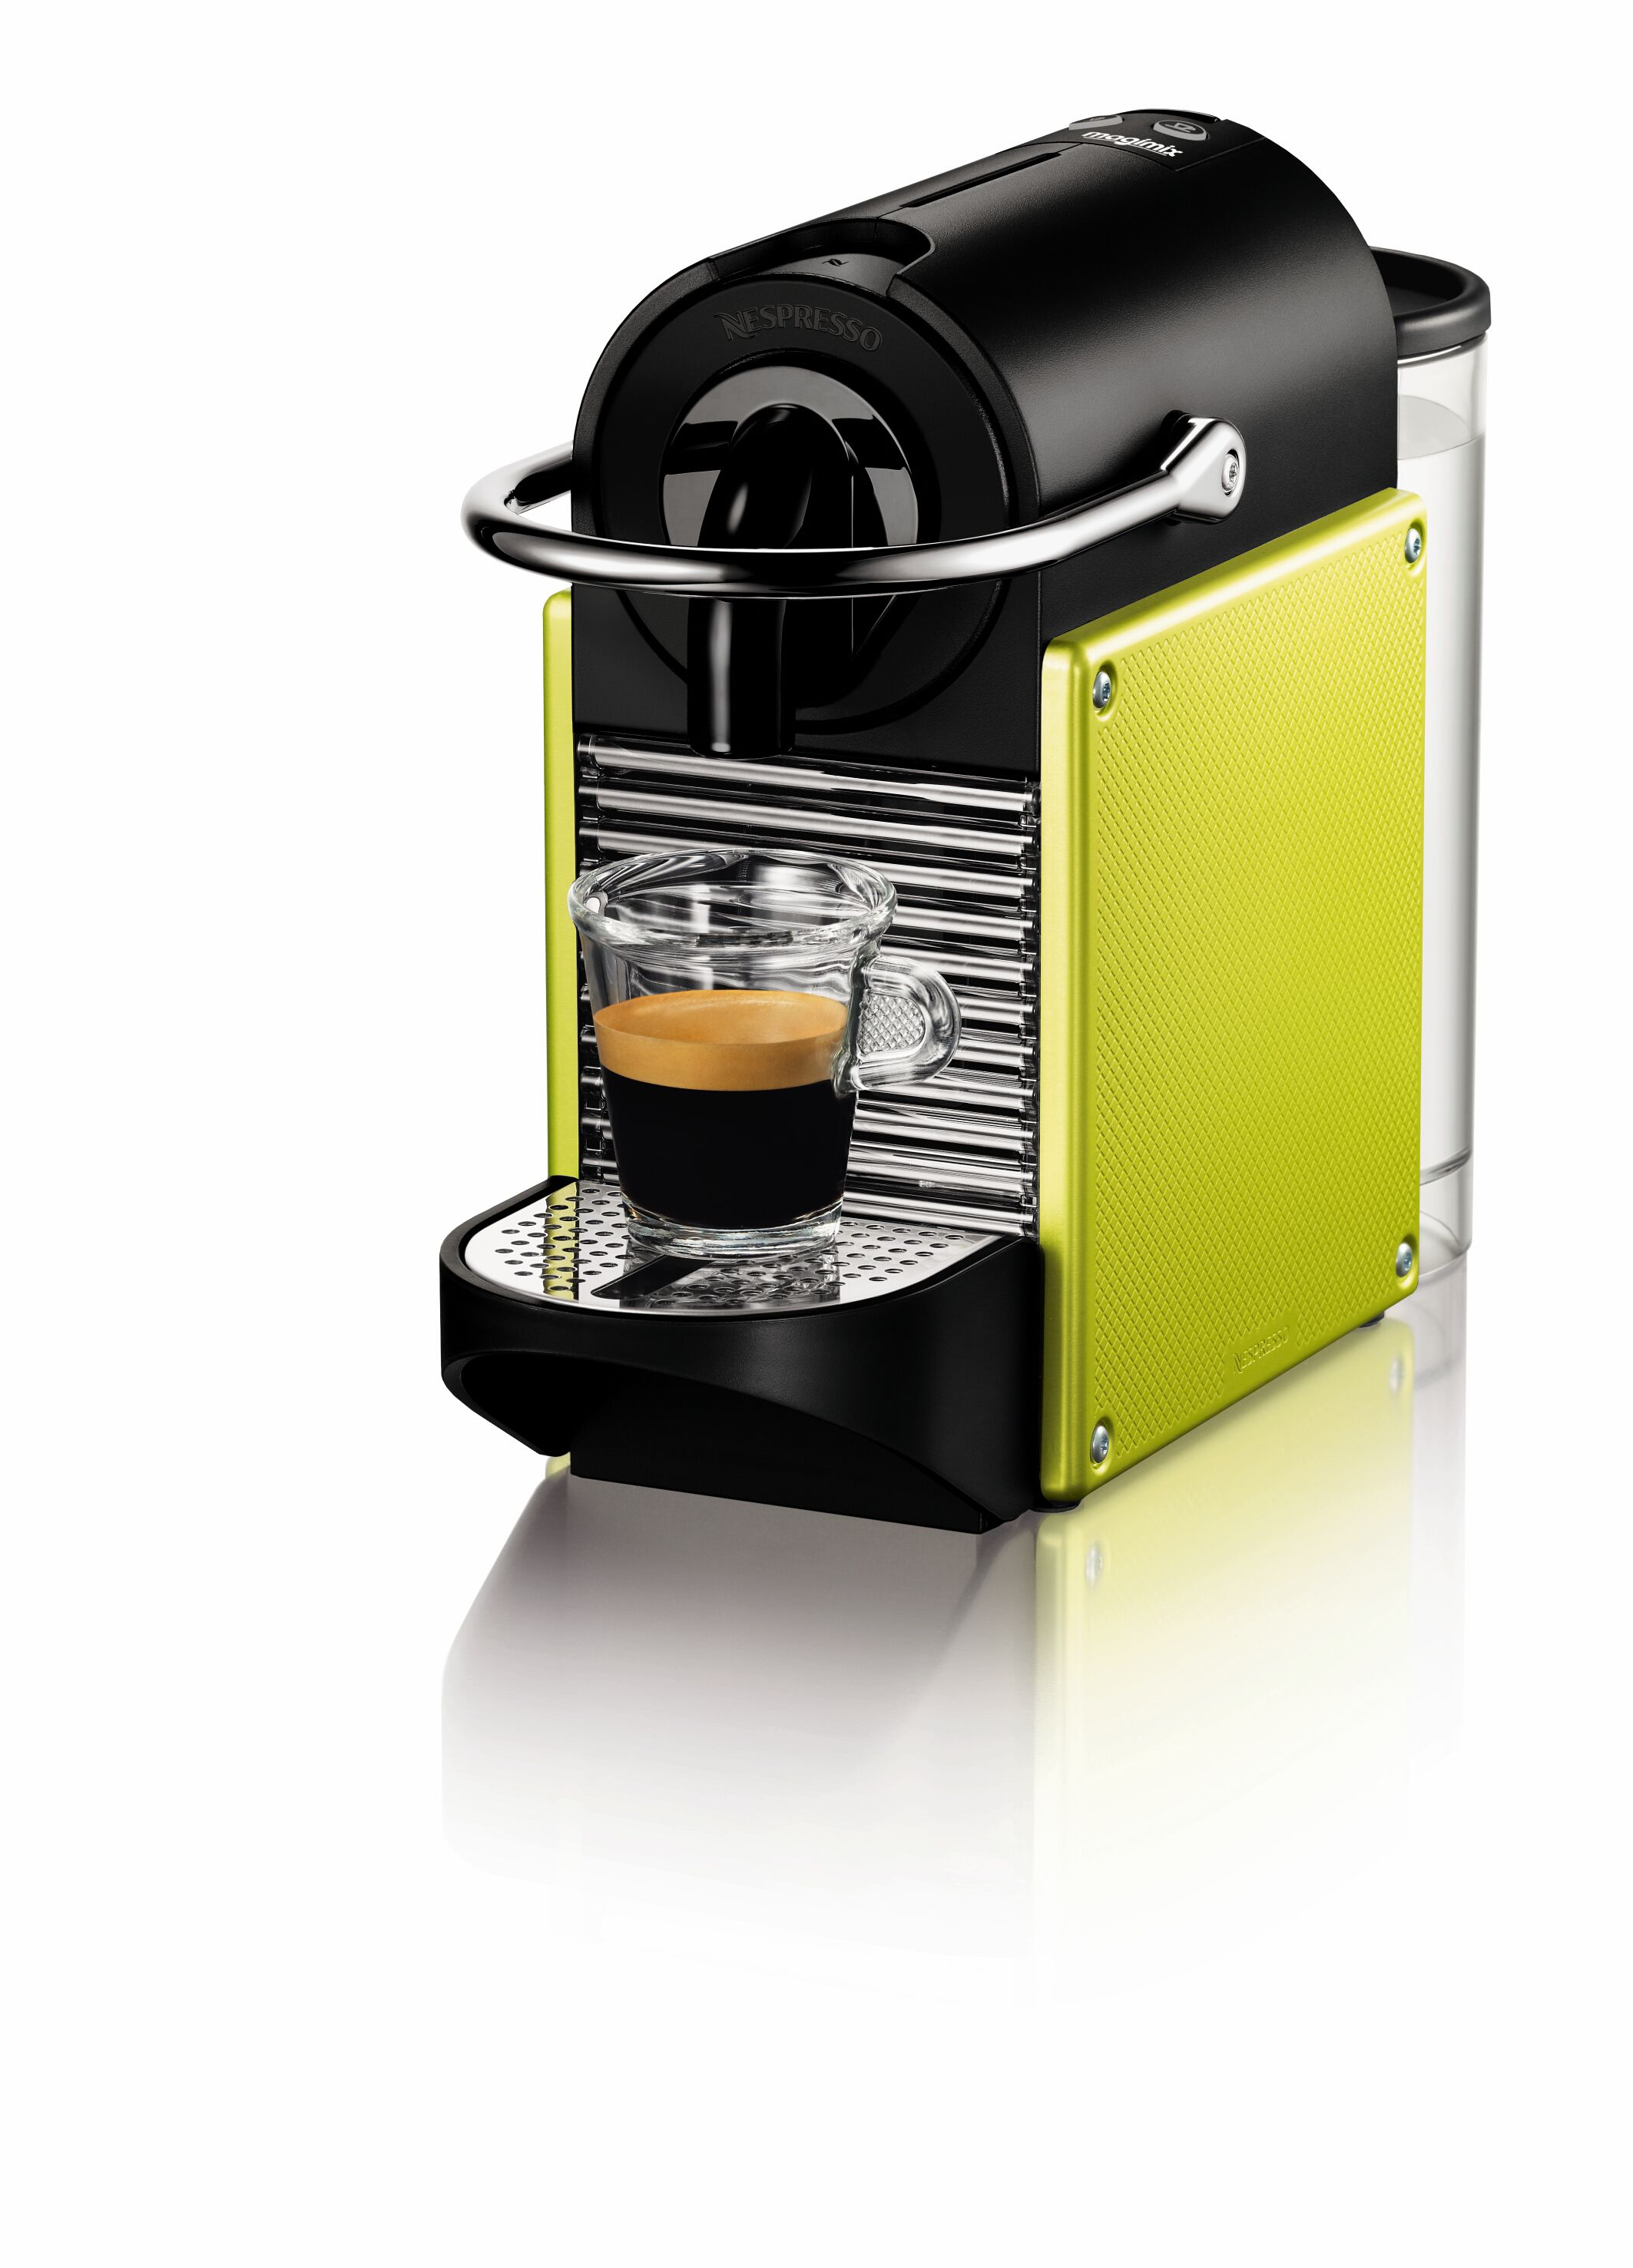 Magimix Pixie Lime Green Nespresso Coffee Maker 11320